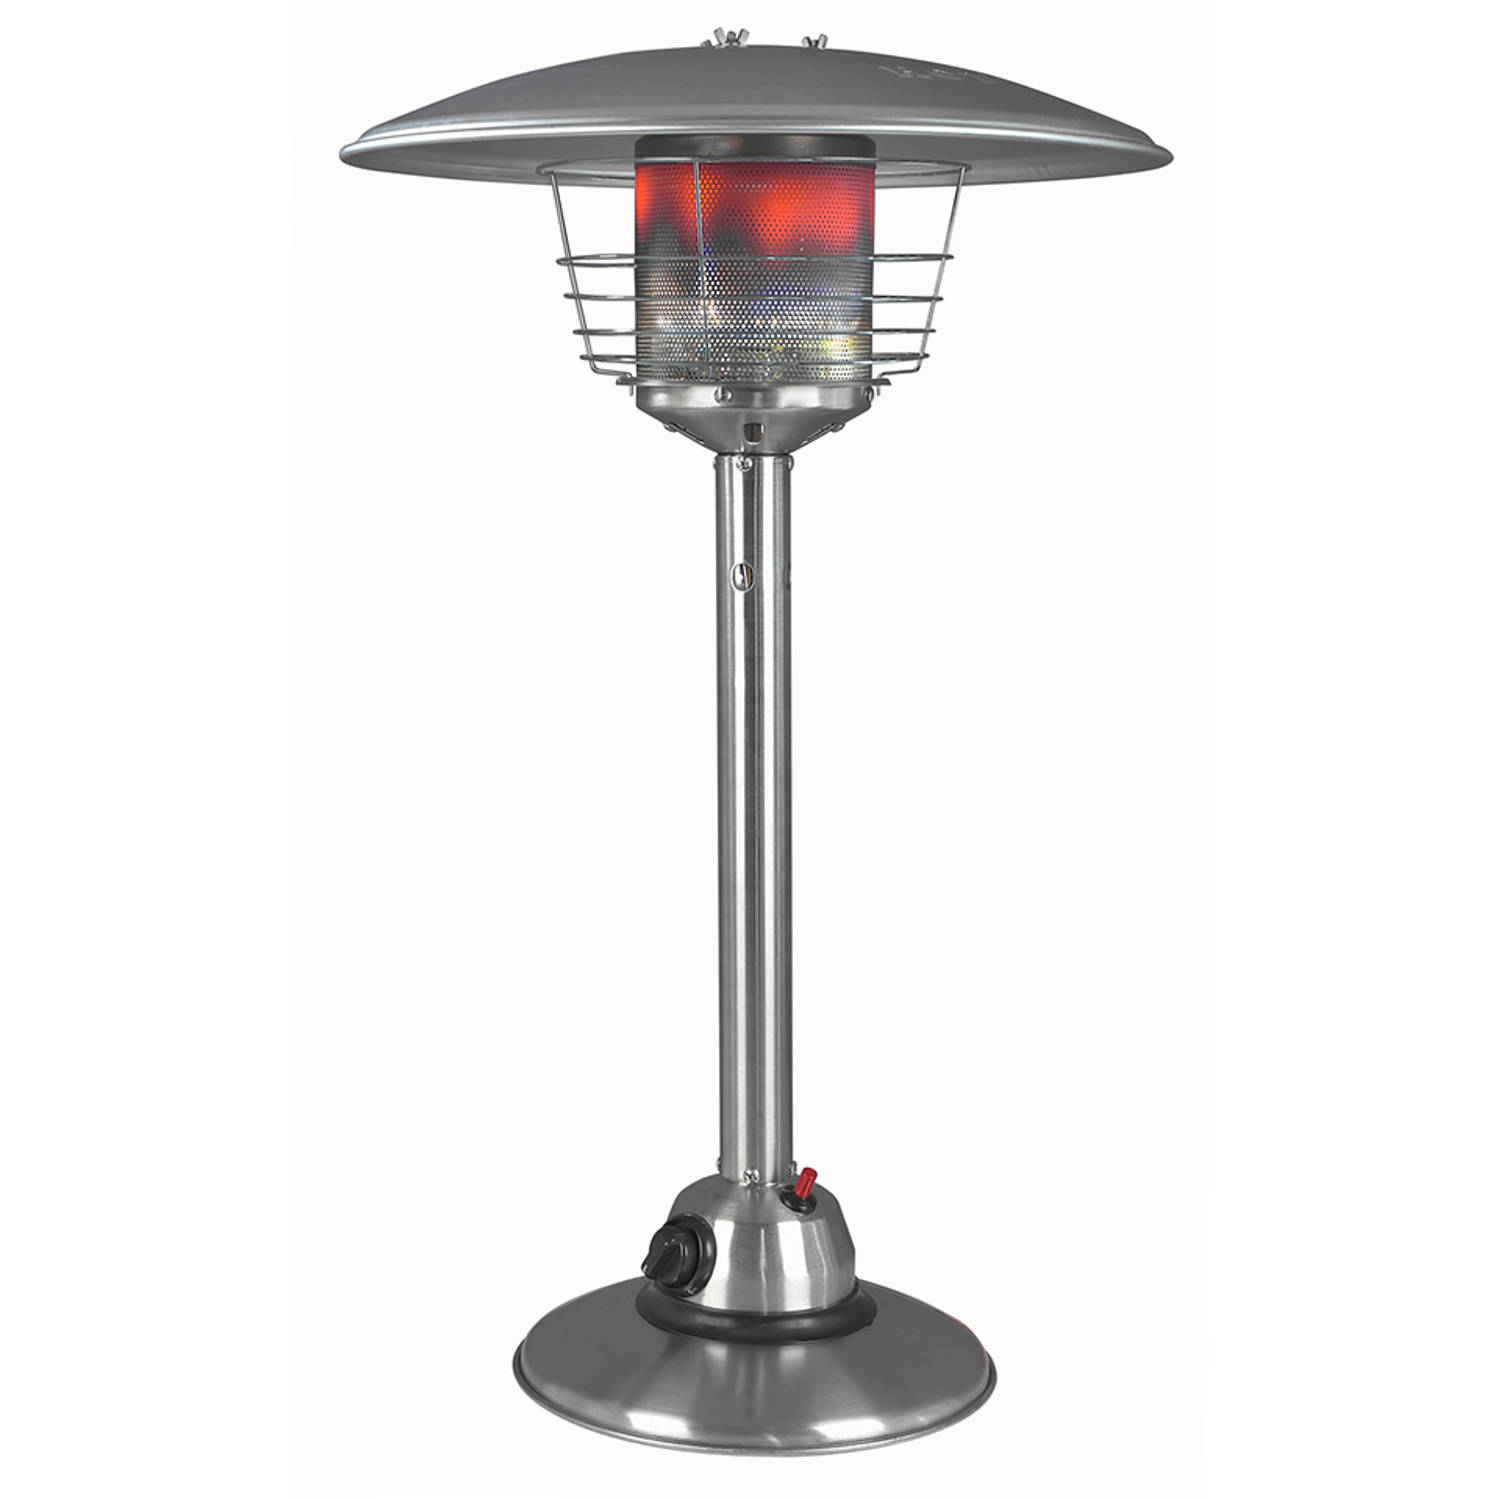 Eurom Table Lounge Heater RVS